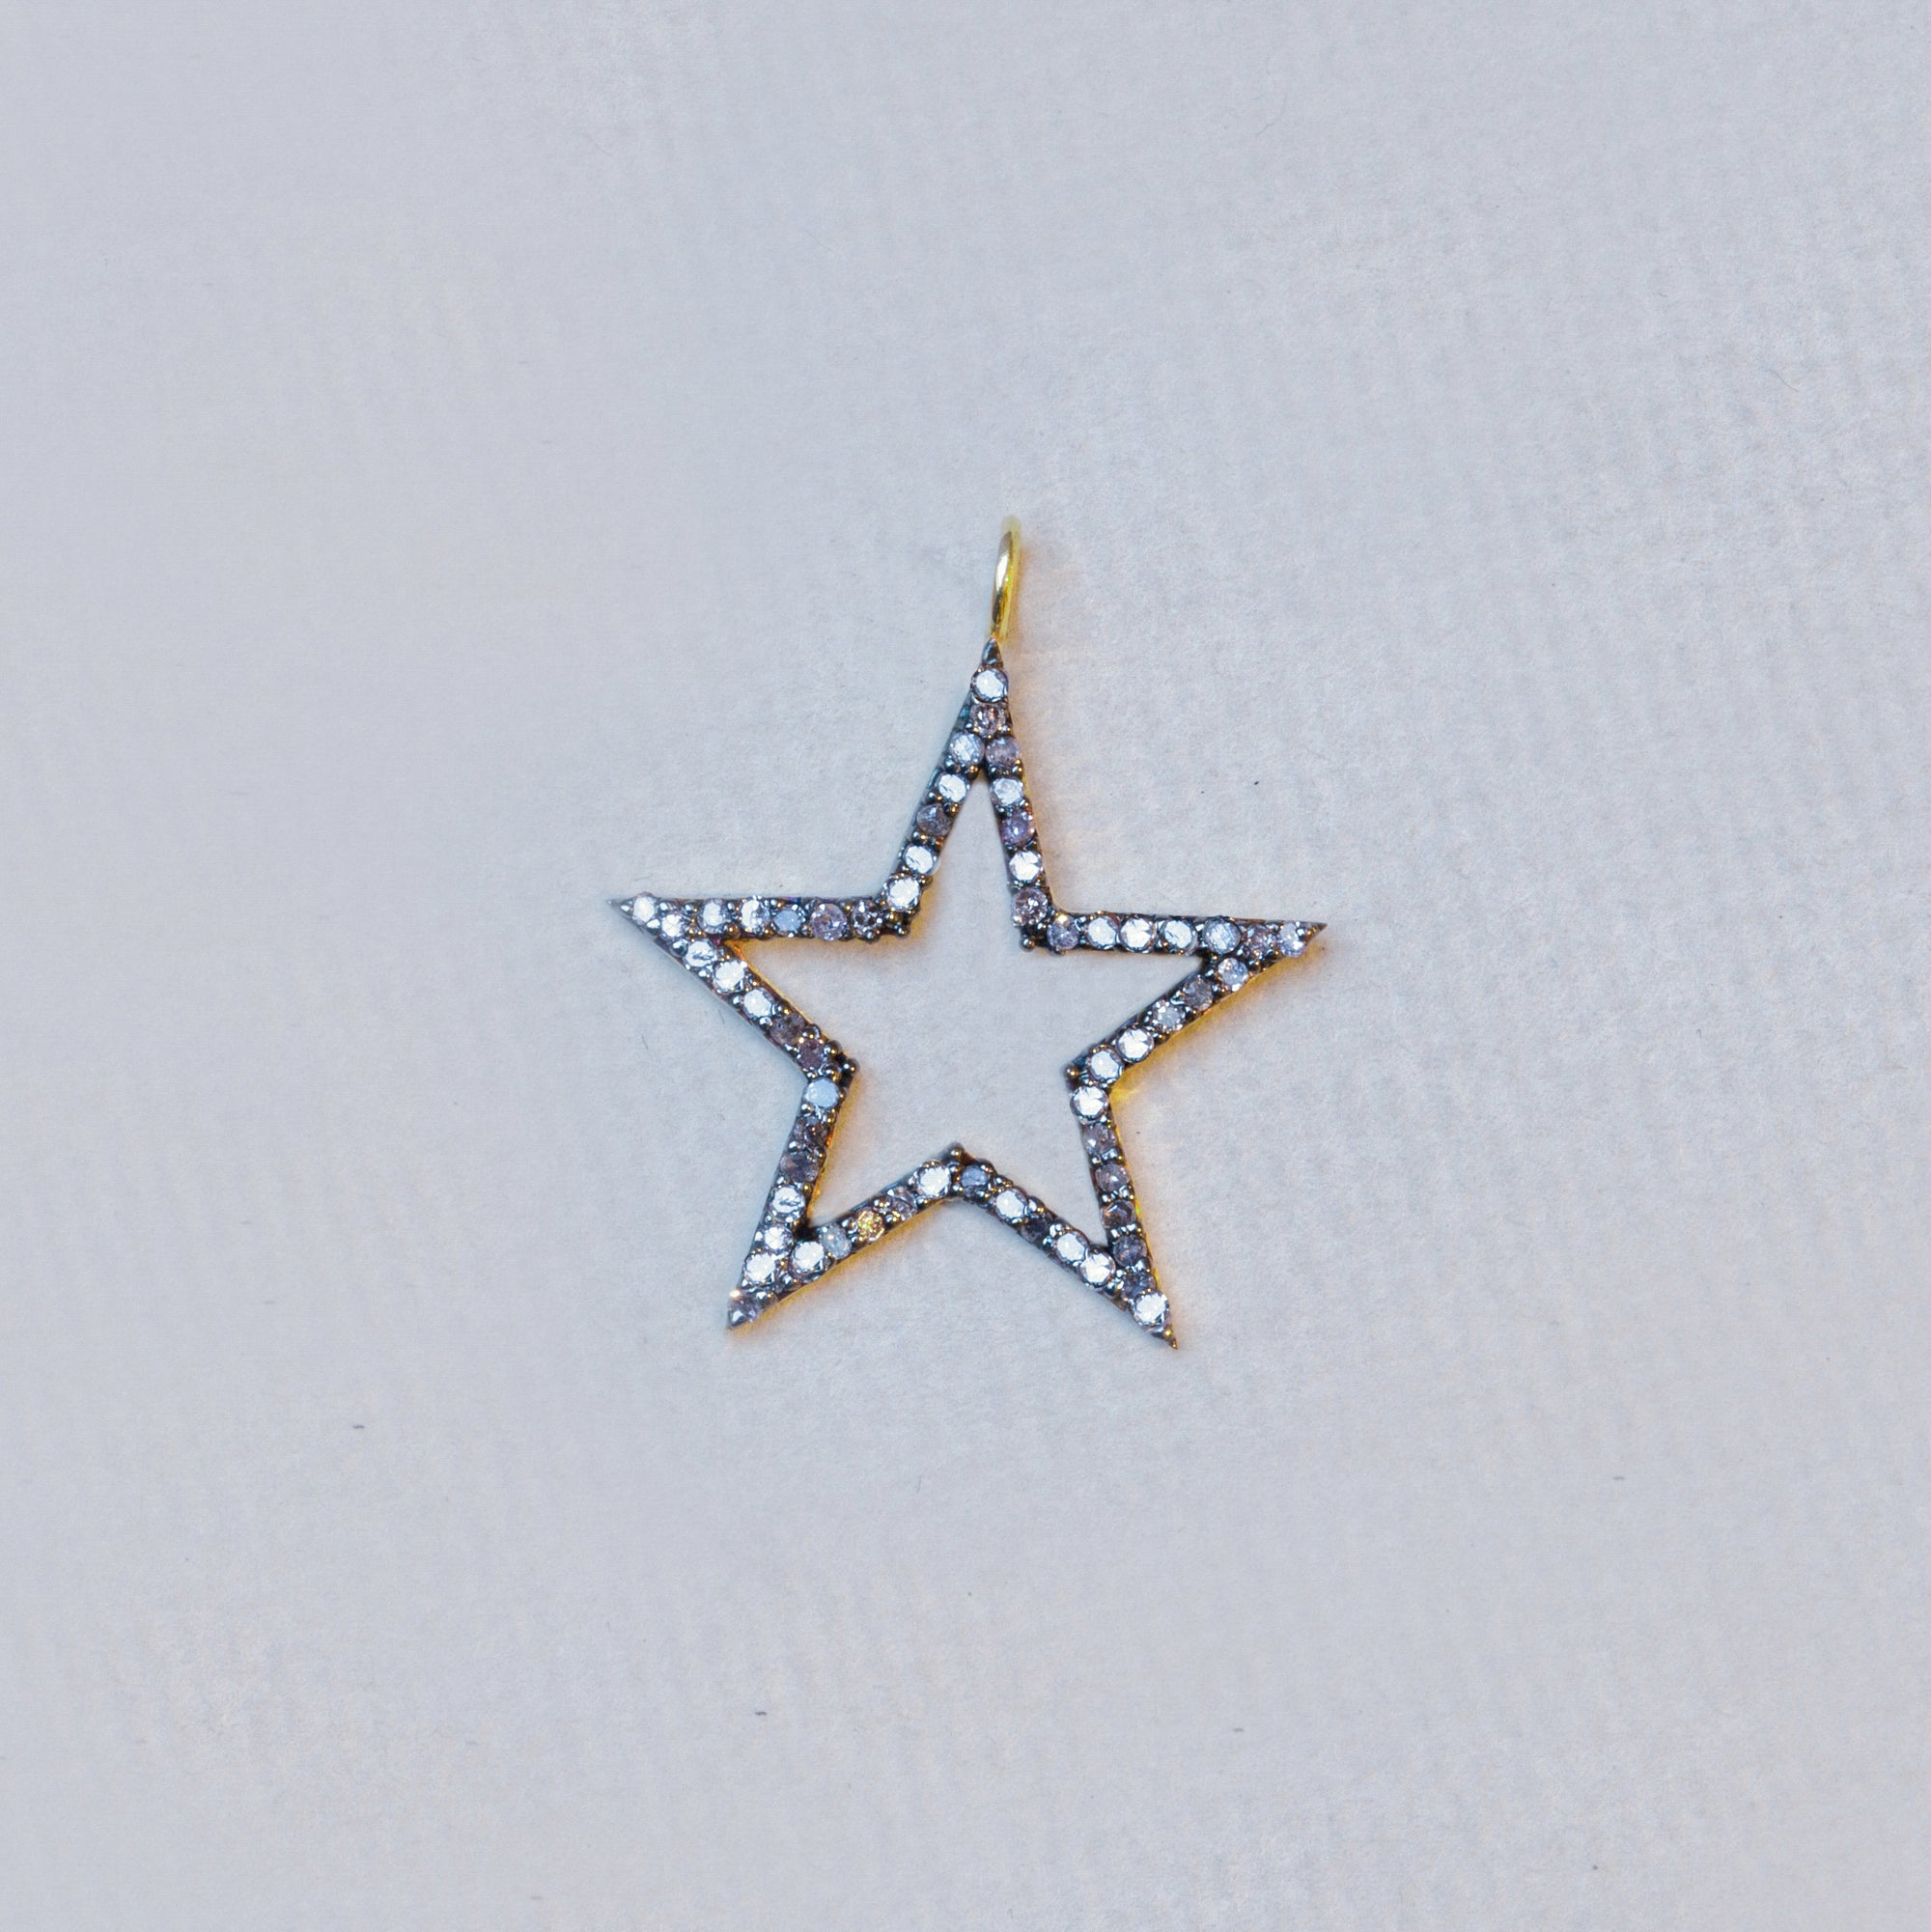 Big Diamond Star Pendant Charm